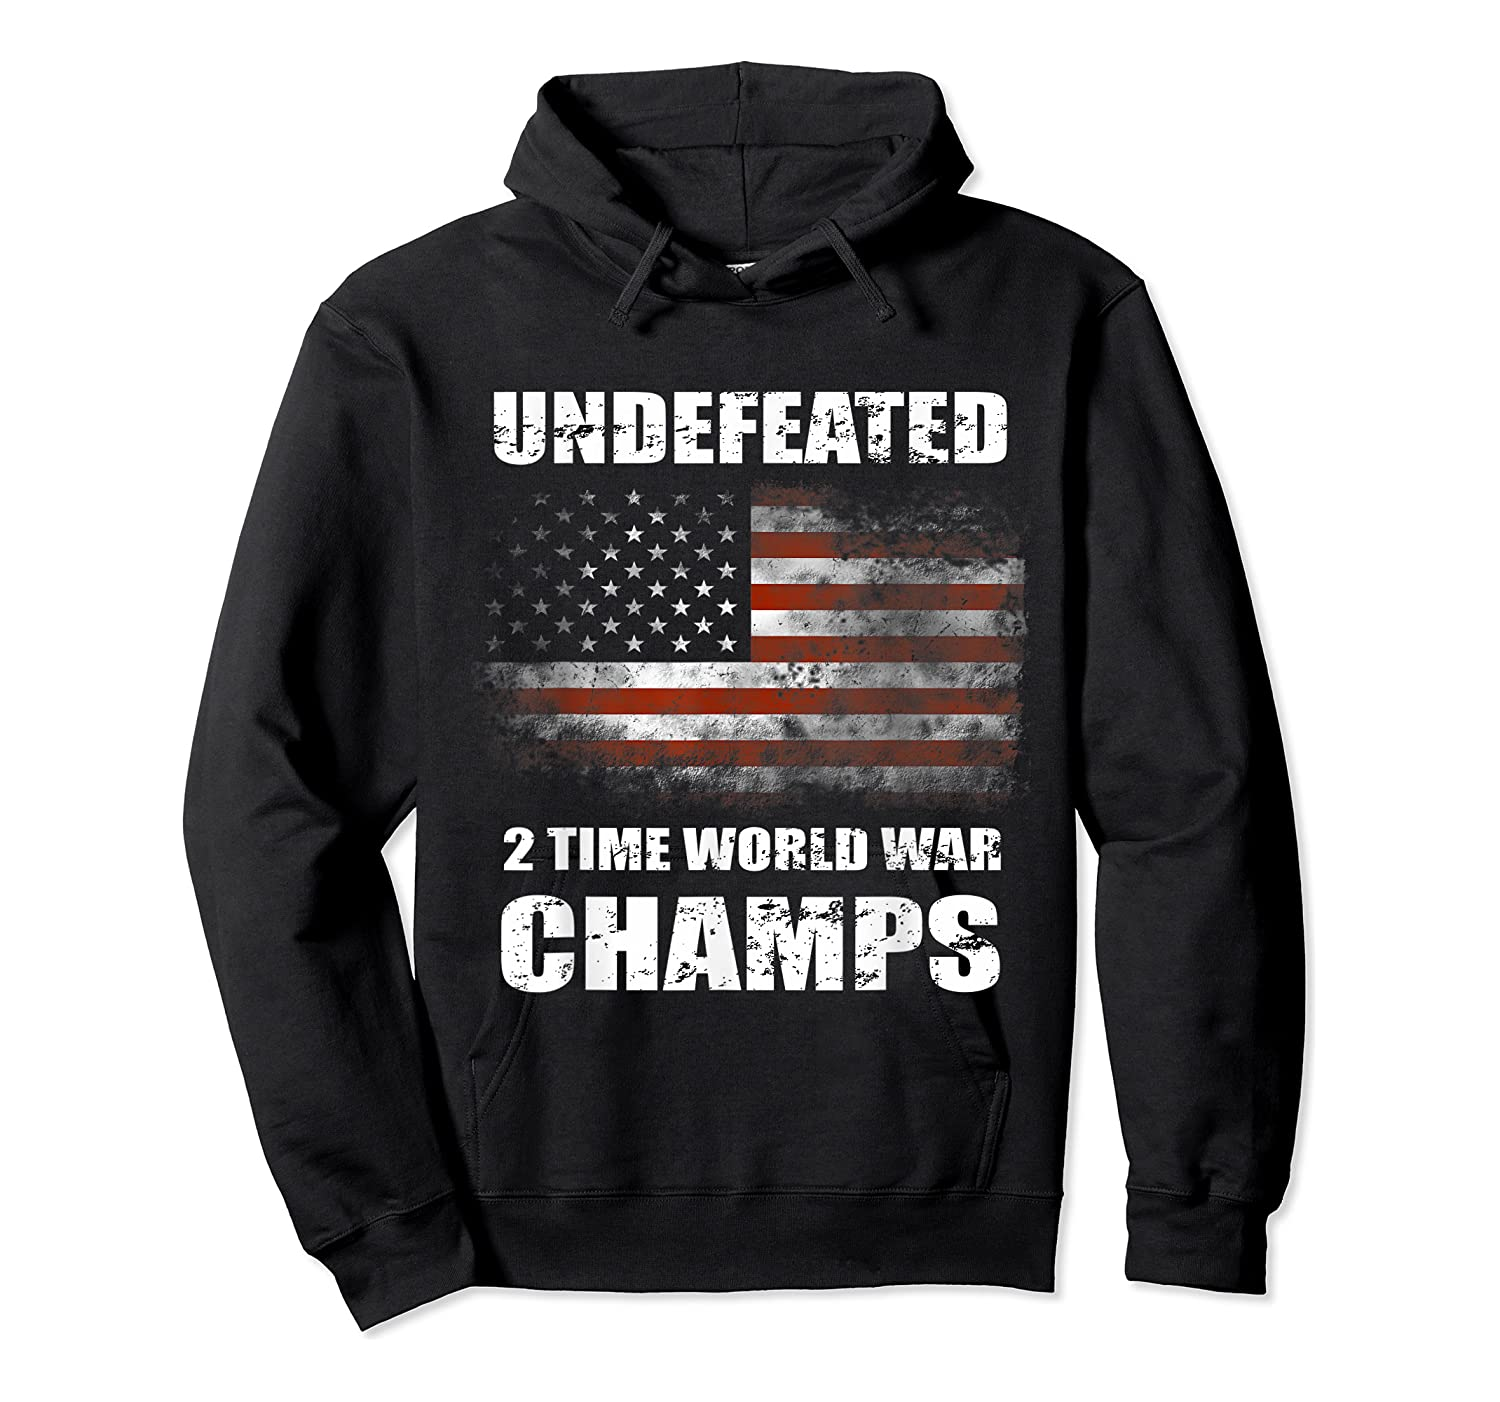 Undeted 2 Time World War T Shirt 4th Of July Shirts Gifts T-shirt Unisex Pullover Hoodie